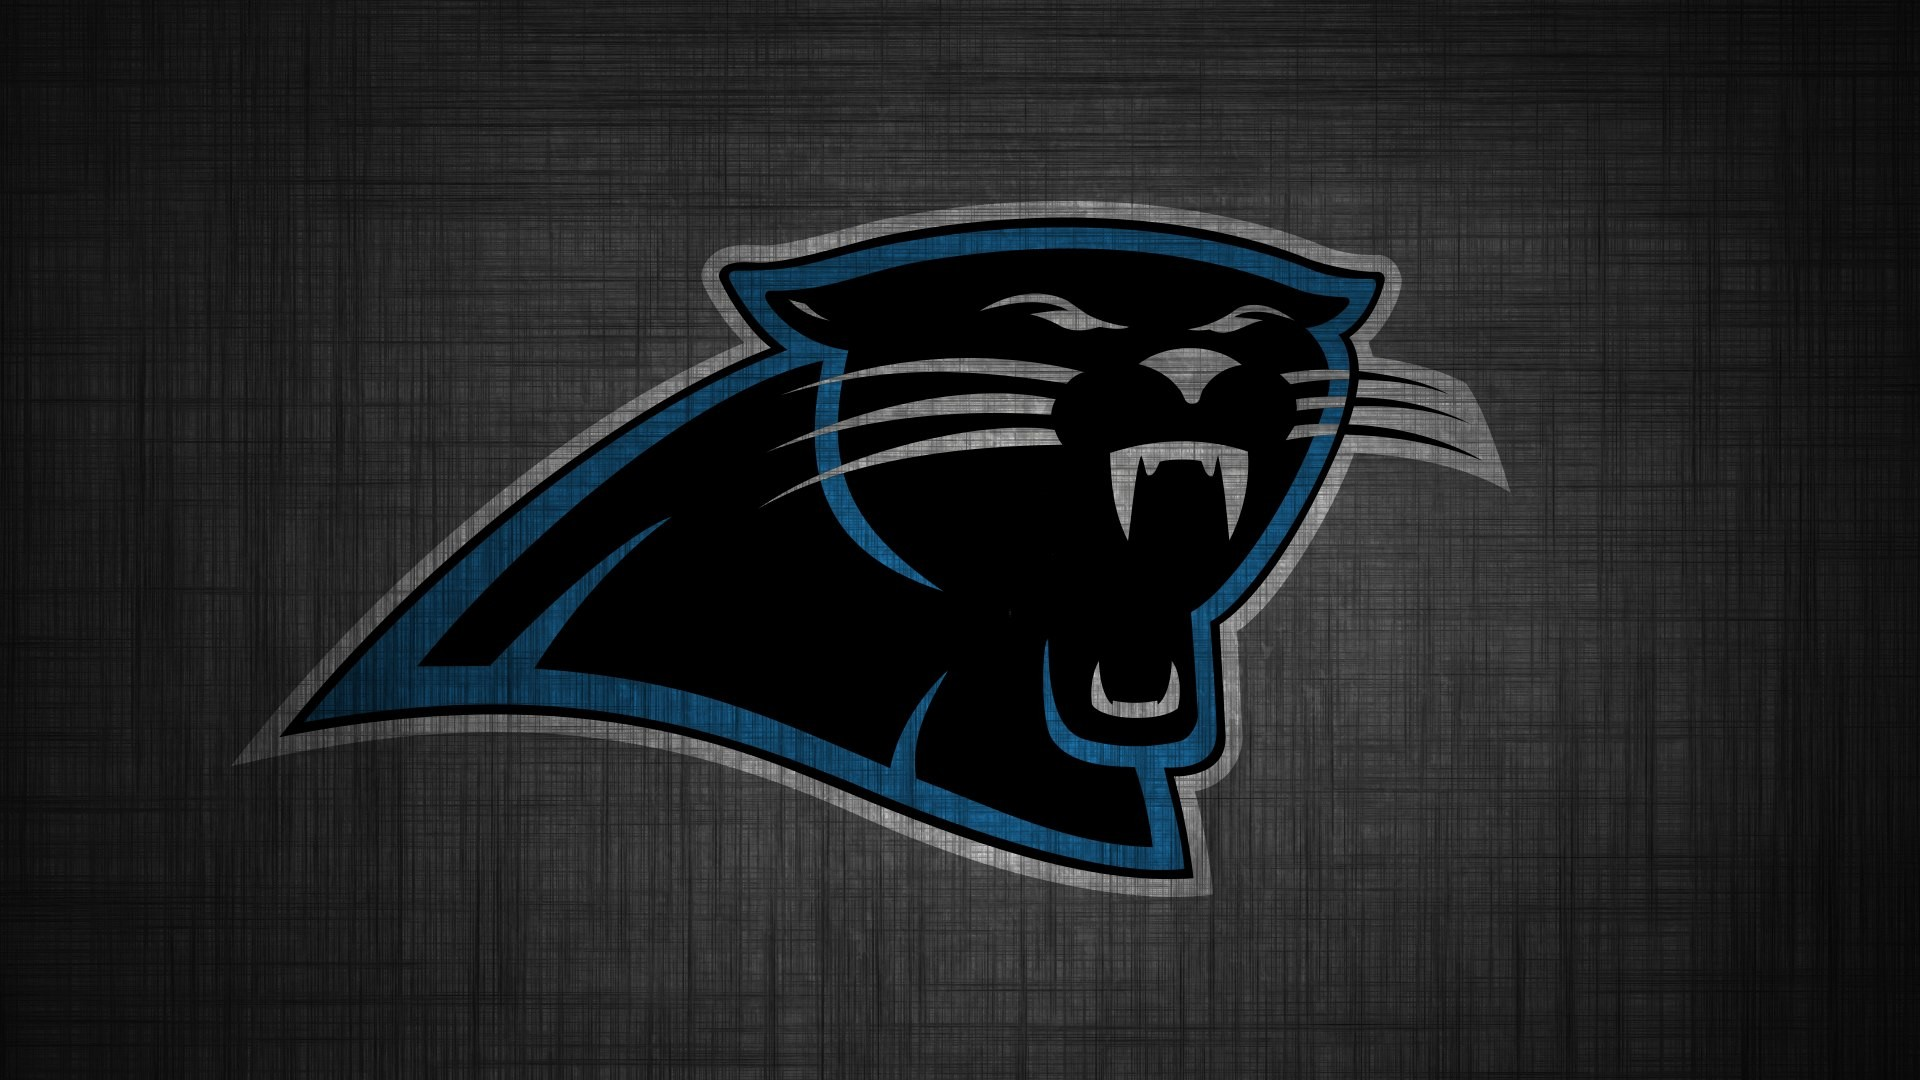 1920x1080 carolina panthers hd wallpapers Carolina Panthers HD Wallpaper Full HD  Pictures